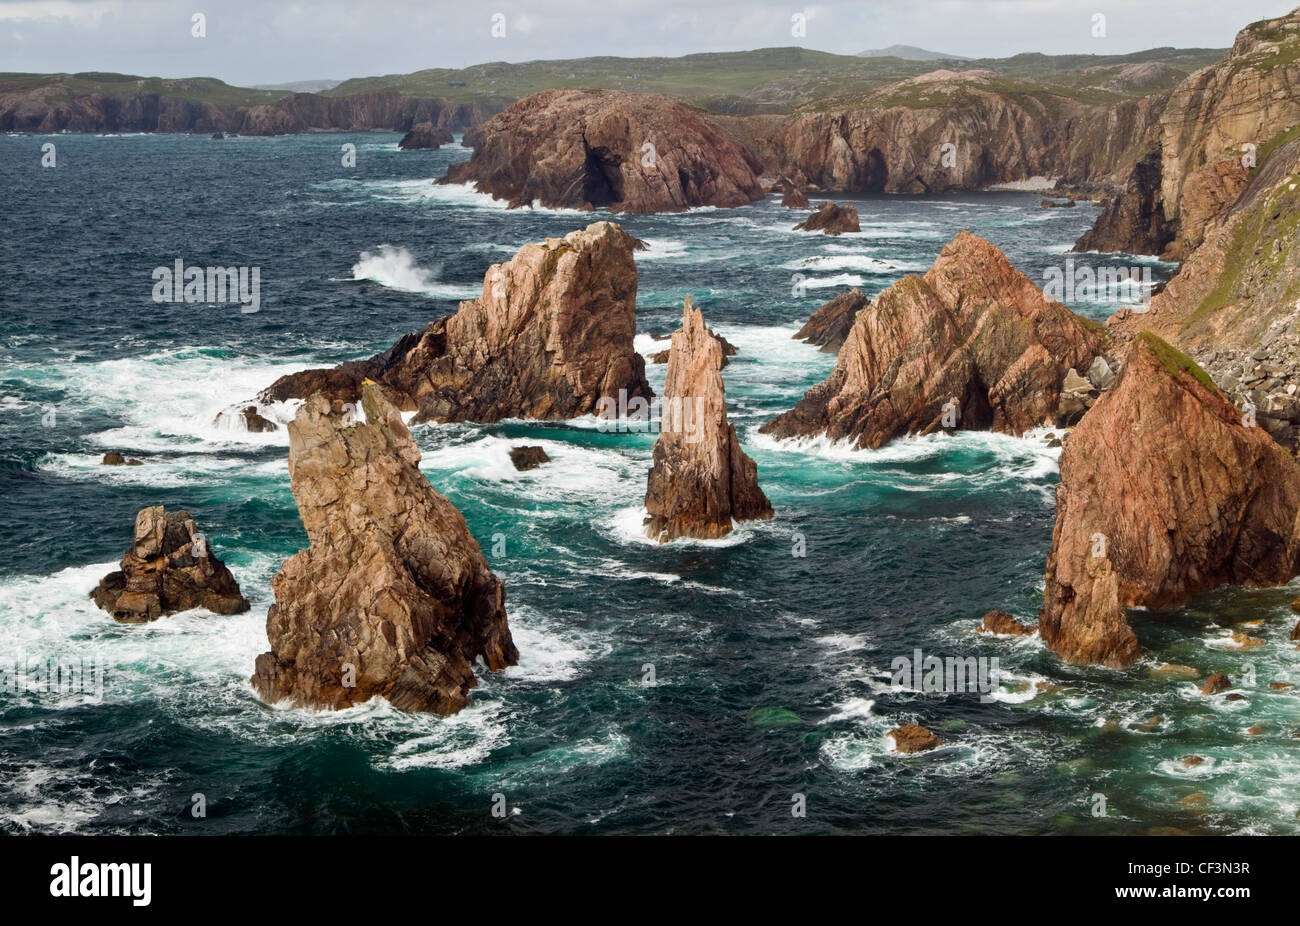 Sea stacks off the western coast of the Isle of Lewis in Scotland. - Stock Image